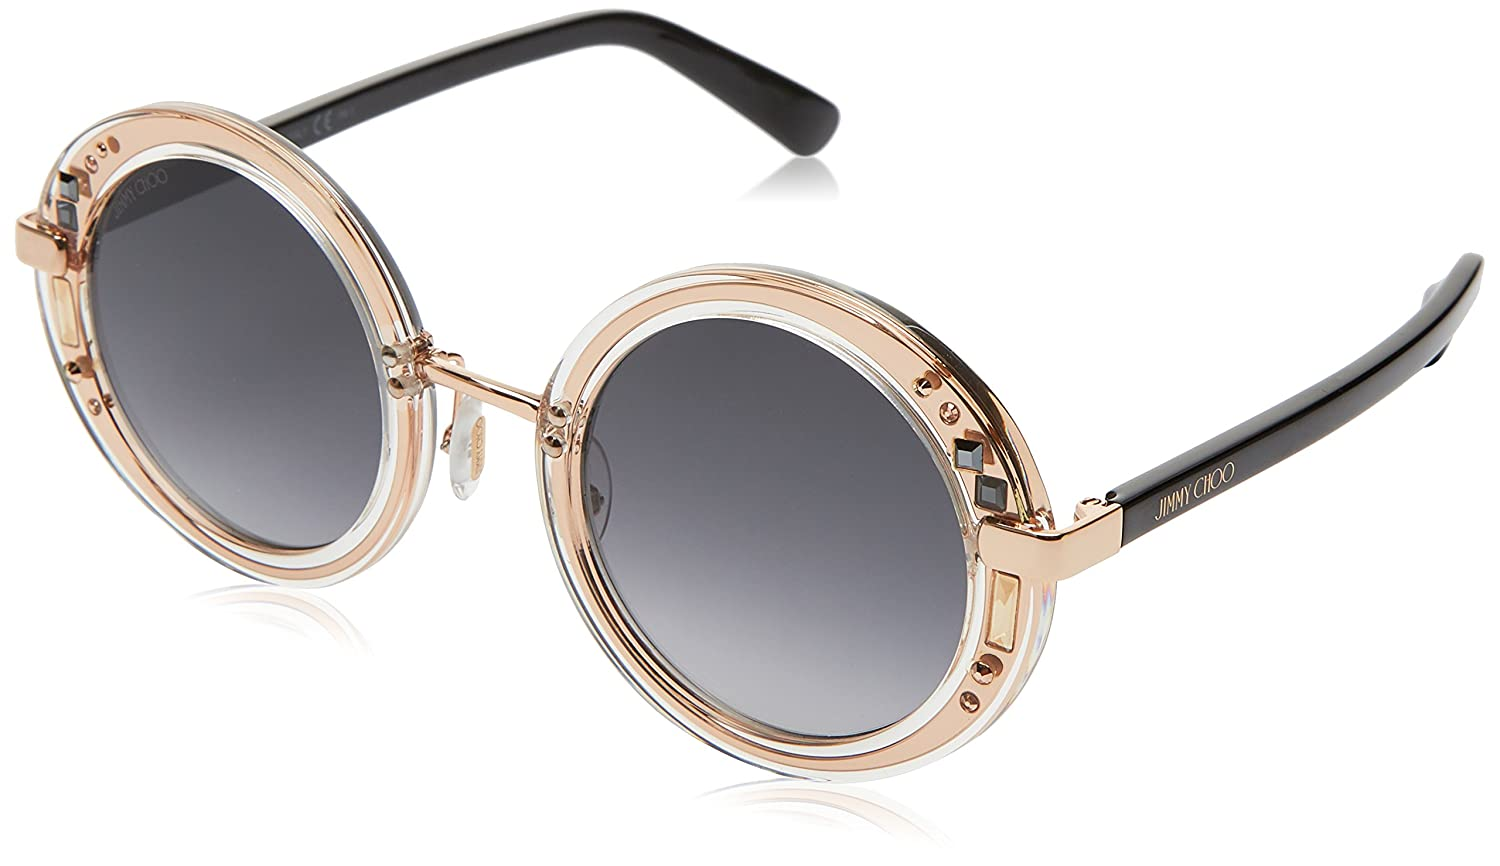 4ce92a12f Amazon.com: Gucci Women's Crystal Red Sunglasses with Brown Lens: Jimmy  Choo: Clothing